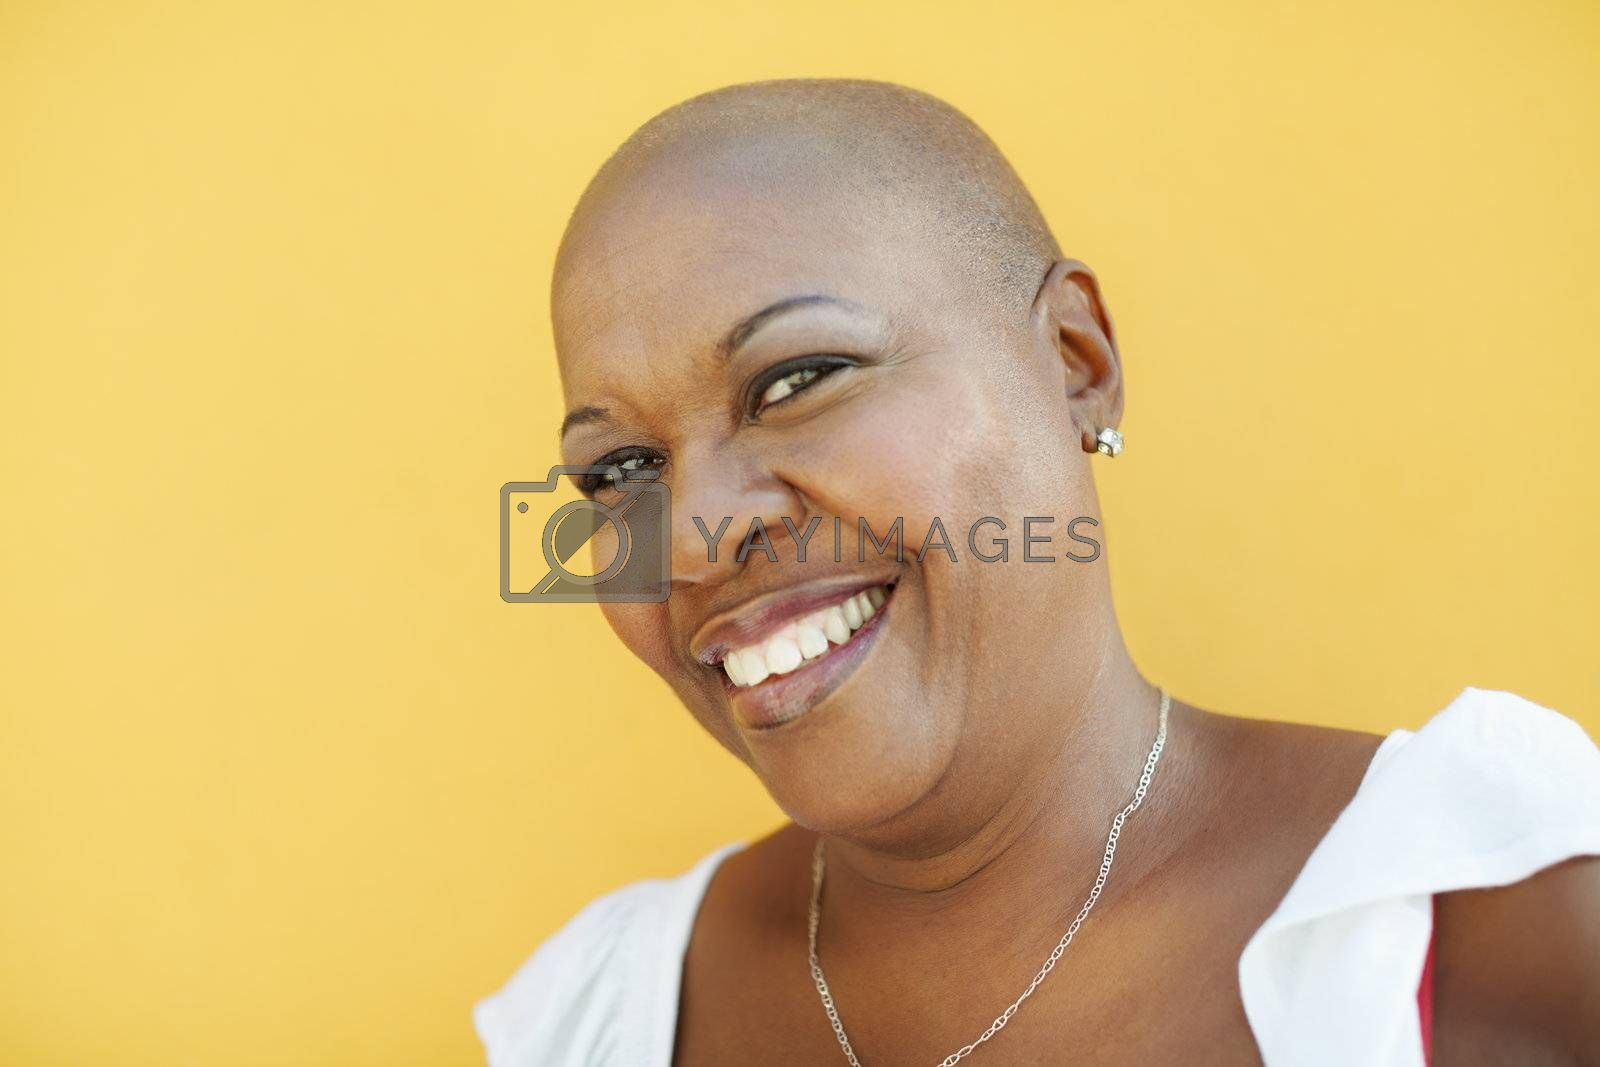 portrait of african 50 years old woman with bald head smiling at camera on yellow background. Head and shoulders, copy space